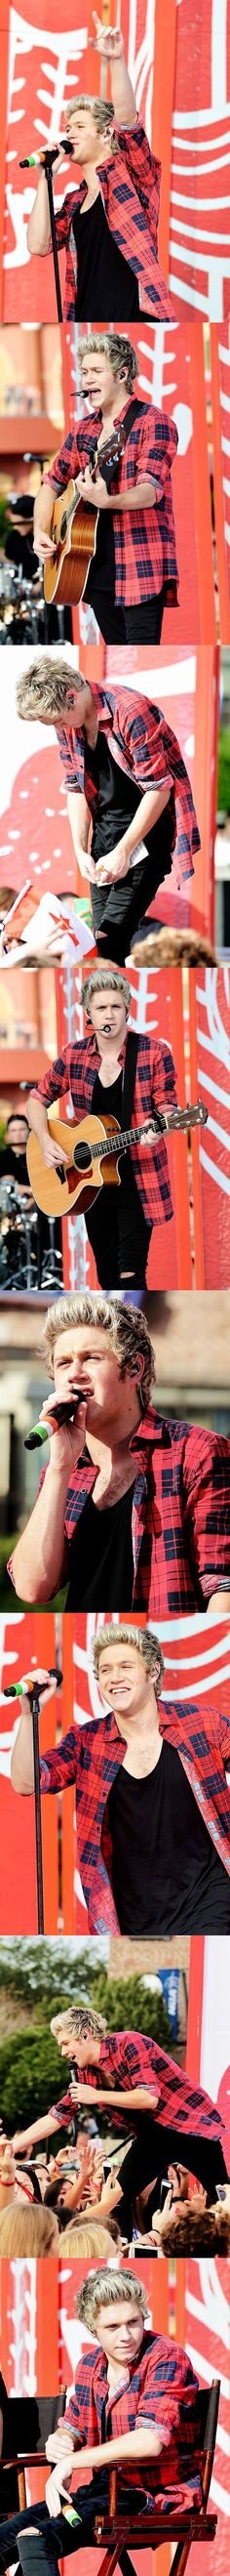 Niall Horan on the Today Show on FOUR release day in Nov 2014